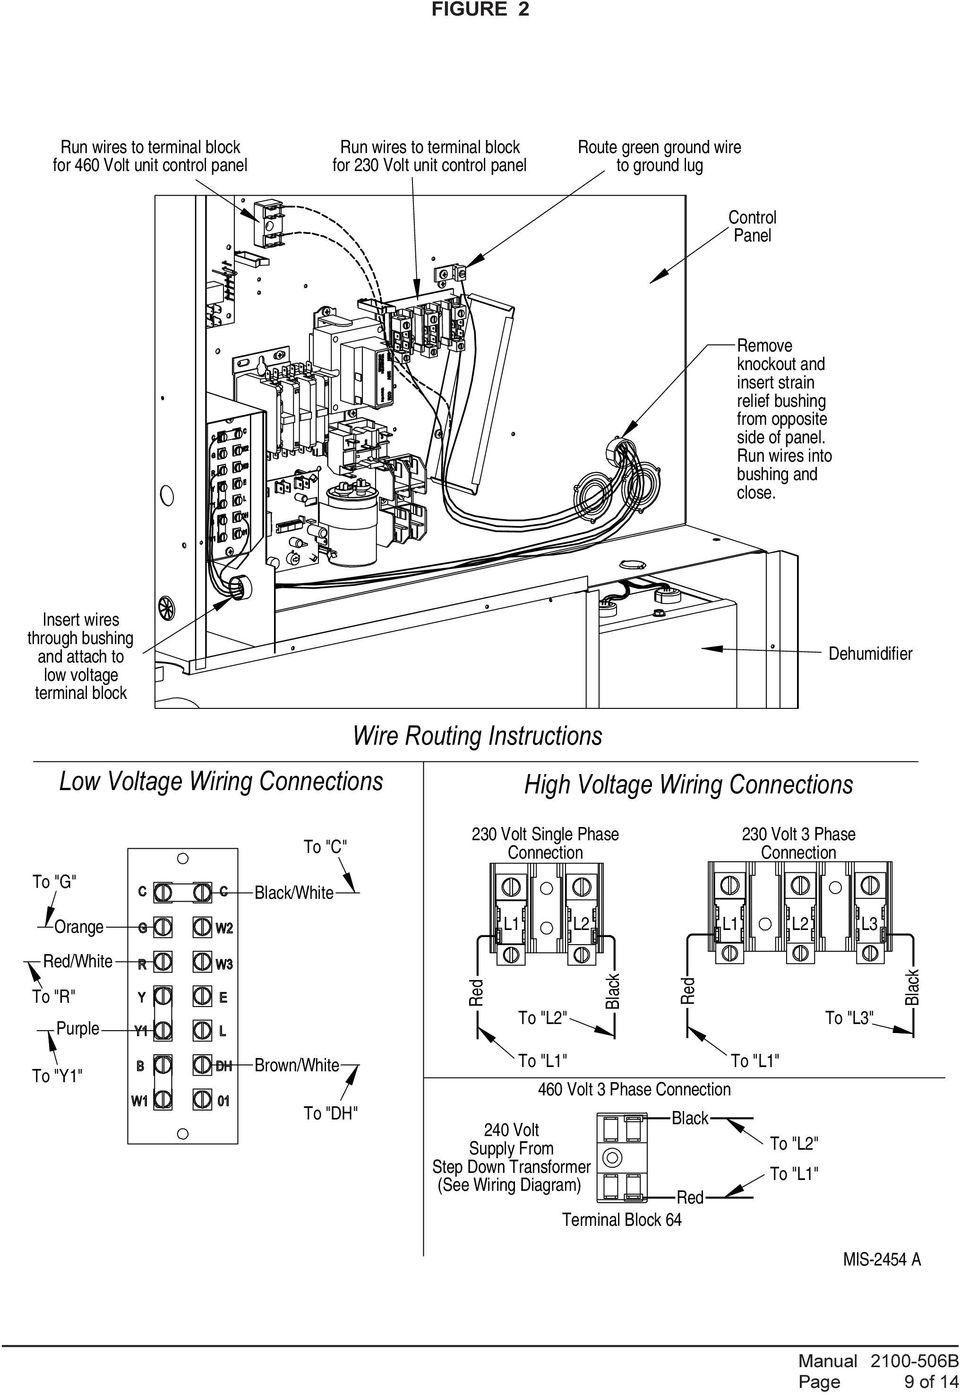 compressor motor 115 230v wiring diagram pdf with Wiring Diagram For 230 Volt on Wiring Diagram For 230 Volt as well Pool Pump 230 Volt Wiring Diagram likewise